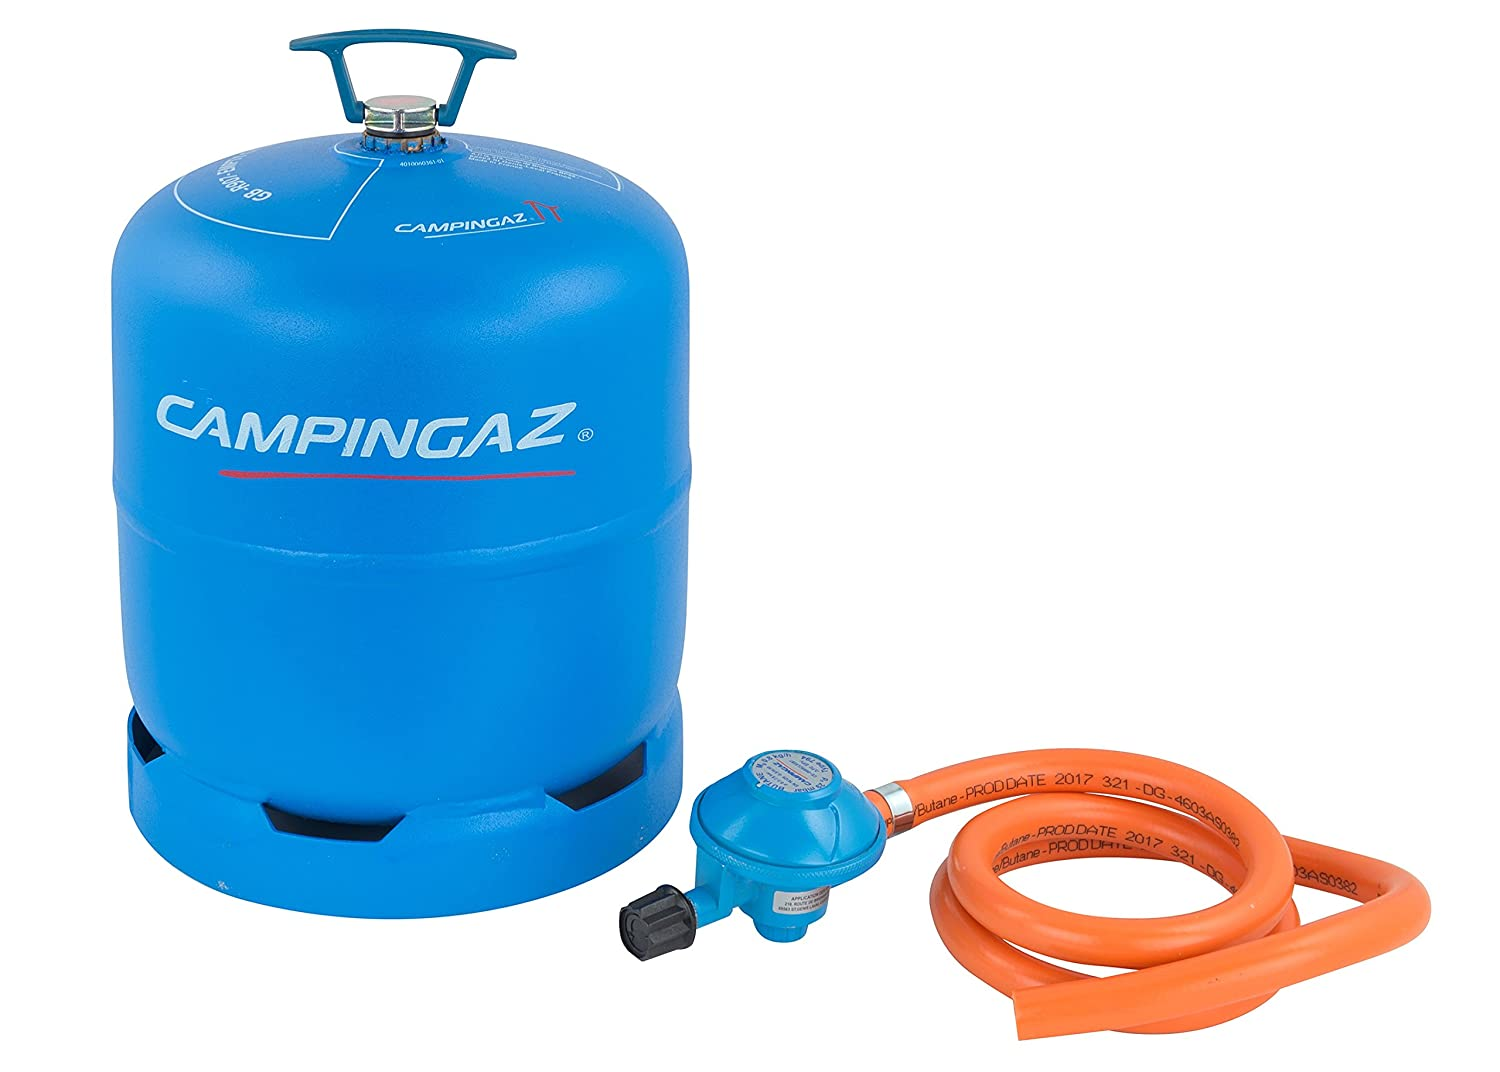 Campingaz R907 Empty Gas Cylinder, 2.75 Kg Gas Capacity, Incl. Hose and 29mbar Regulator, for Use With Any Two Burner Stove, International Exchange Service 3000005648